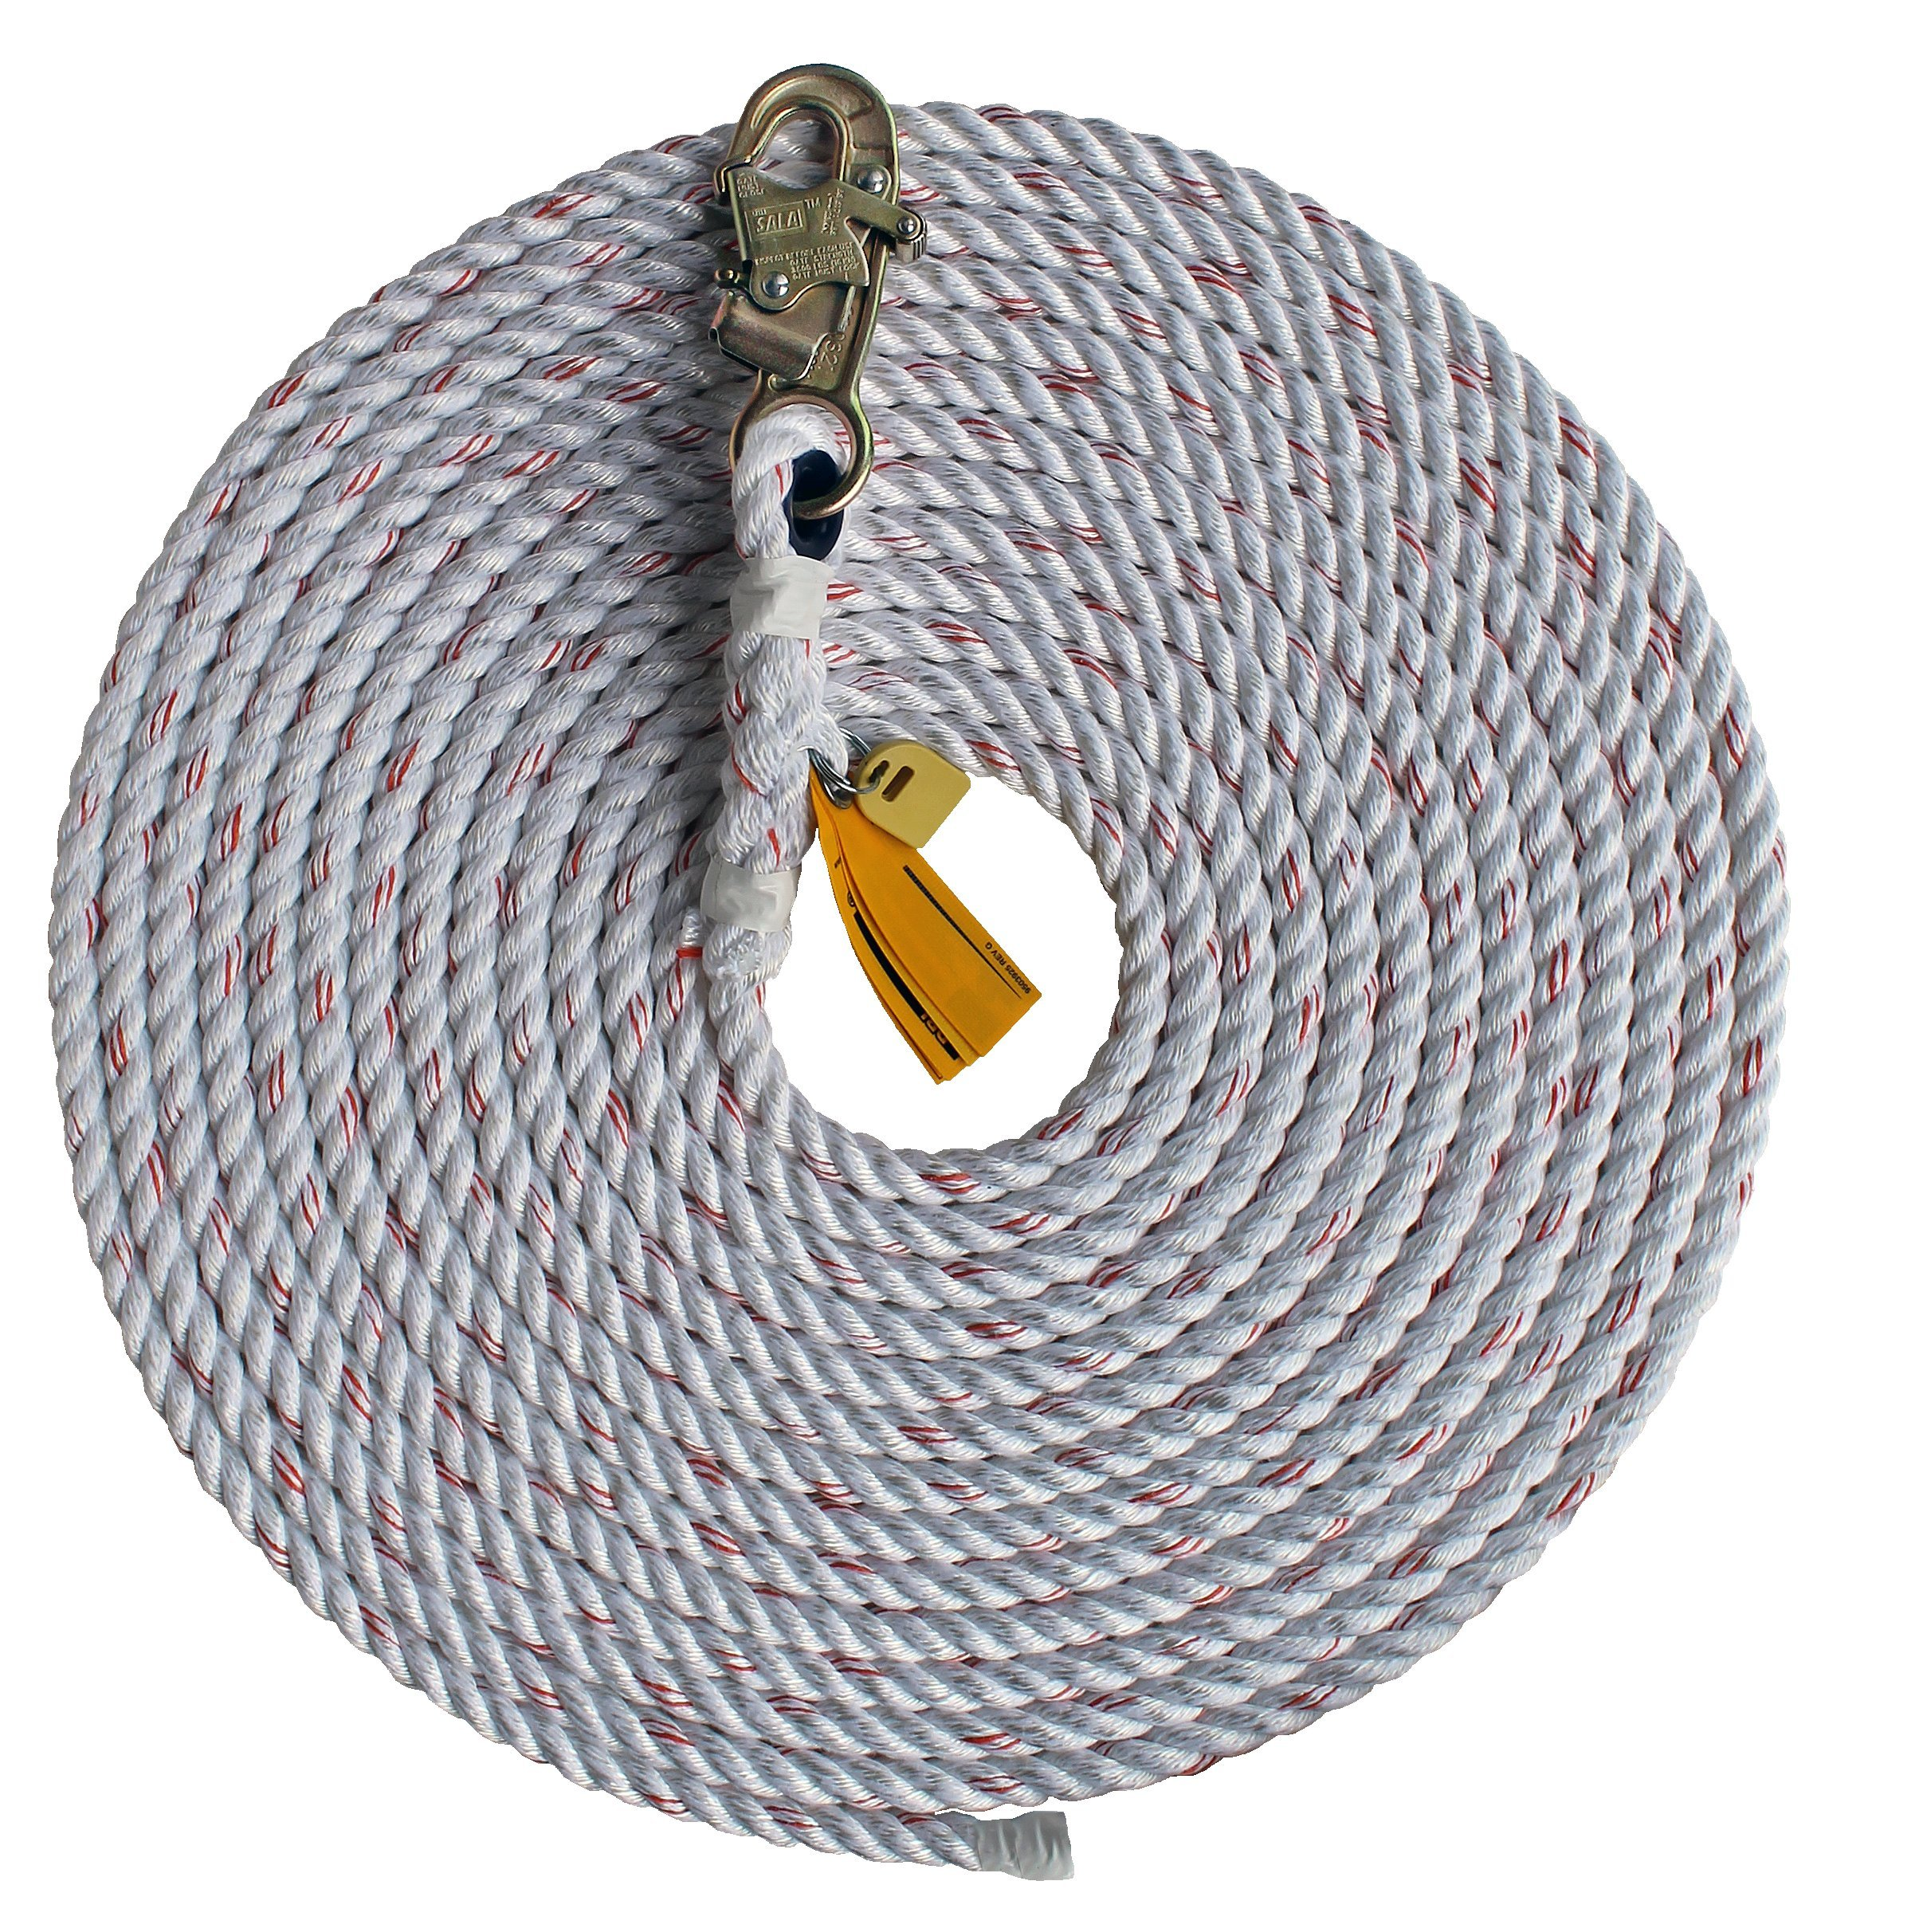 3M DBI-SALA 1202754 Vertical Systems, 5/8'' Polyester Polypropylene, 30' Rope Lifeline, with Snaphook, White with Orange Tracer by 3M Personal Protective Equipment